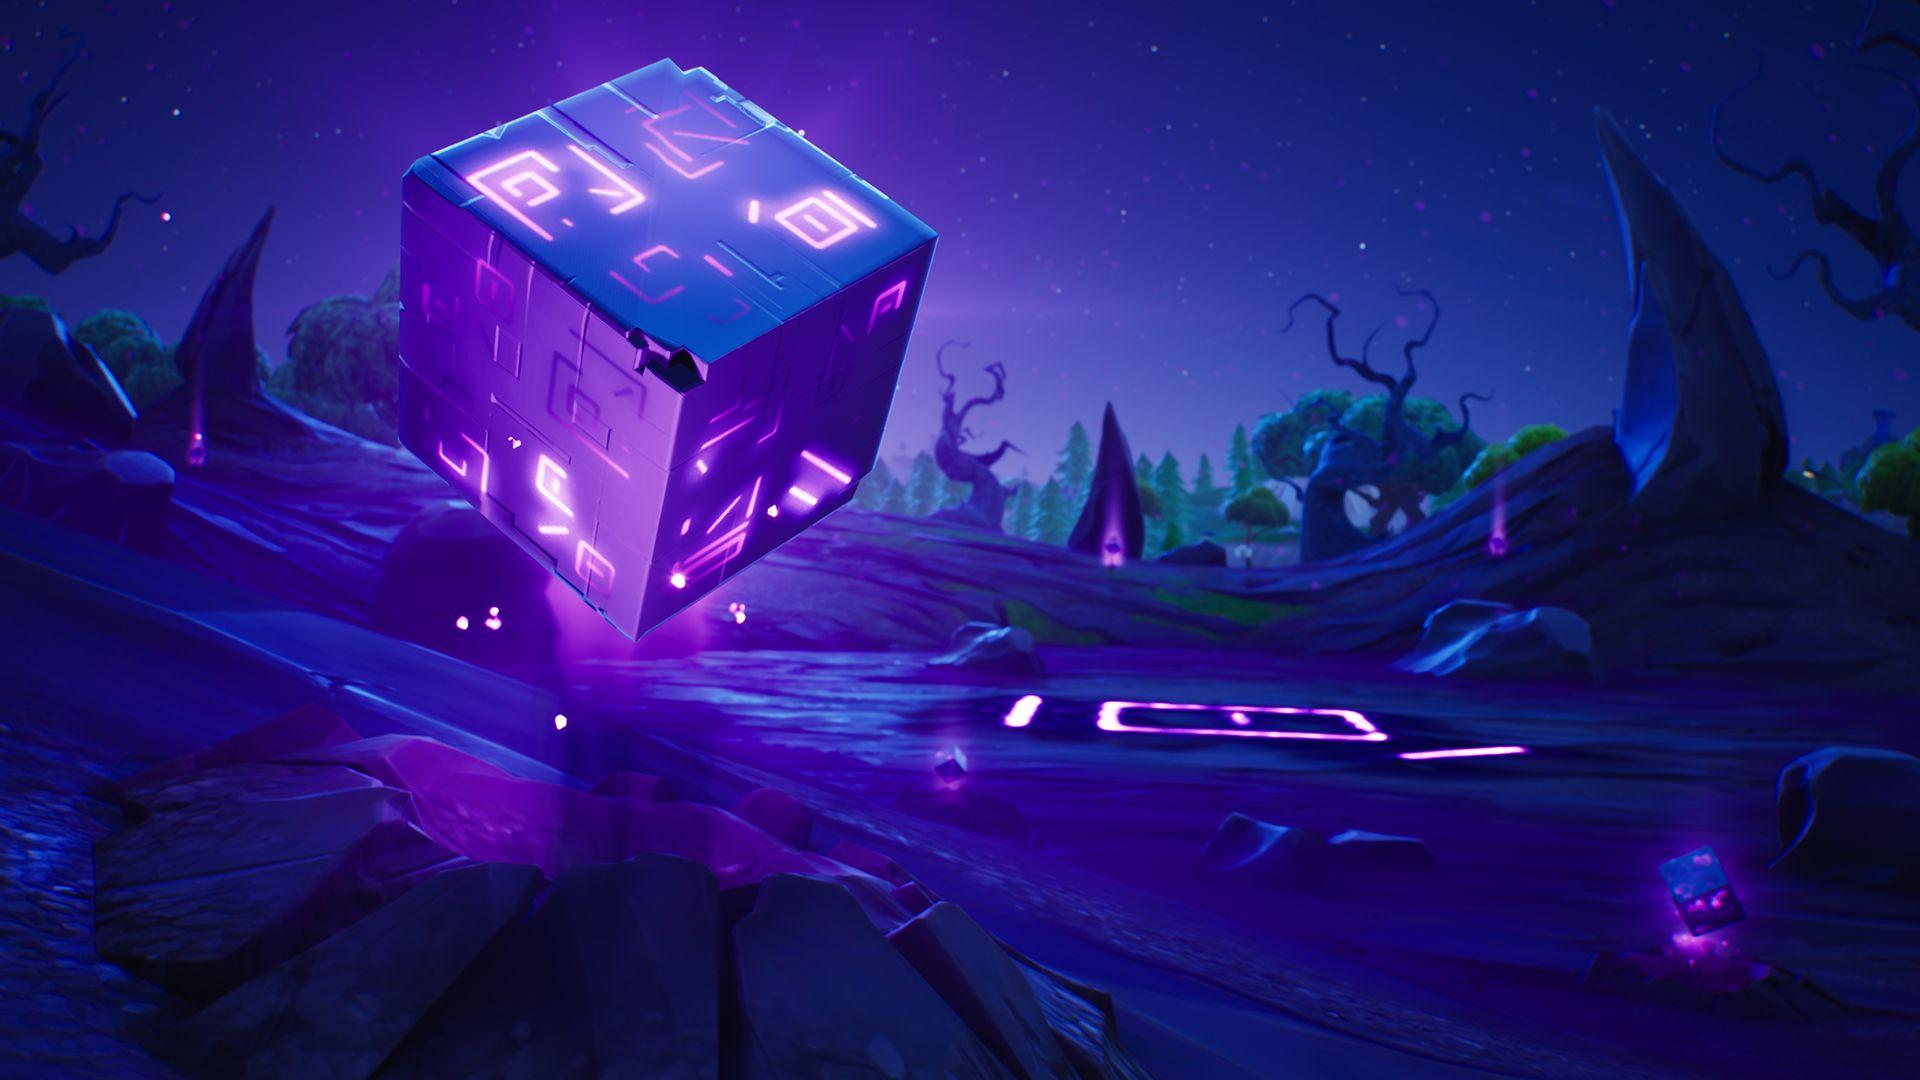 Fortnite Season 6 guide: theme, skins, map changes, battle pass and